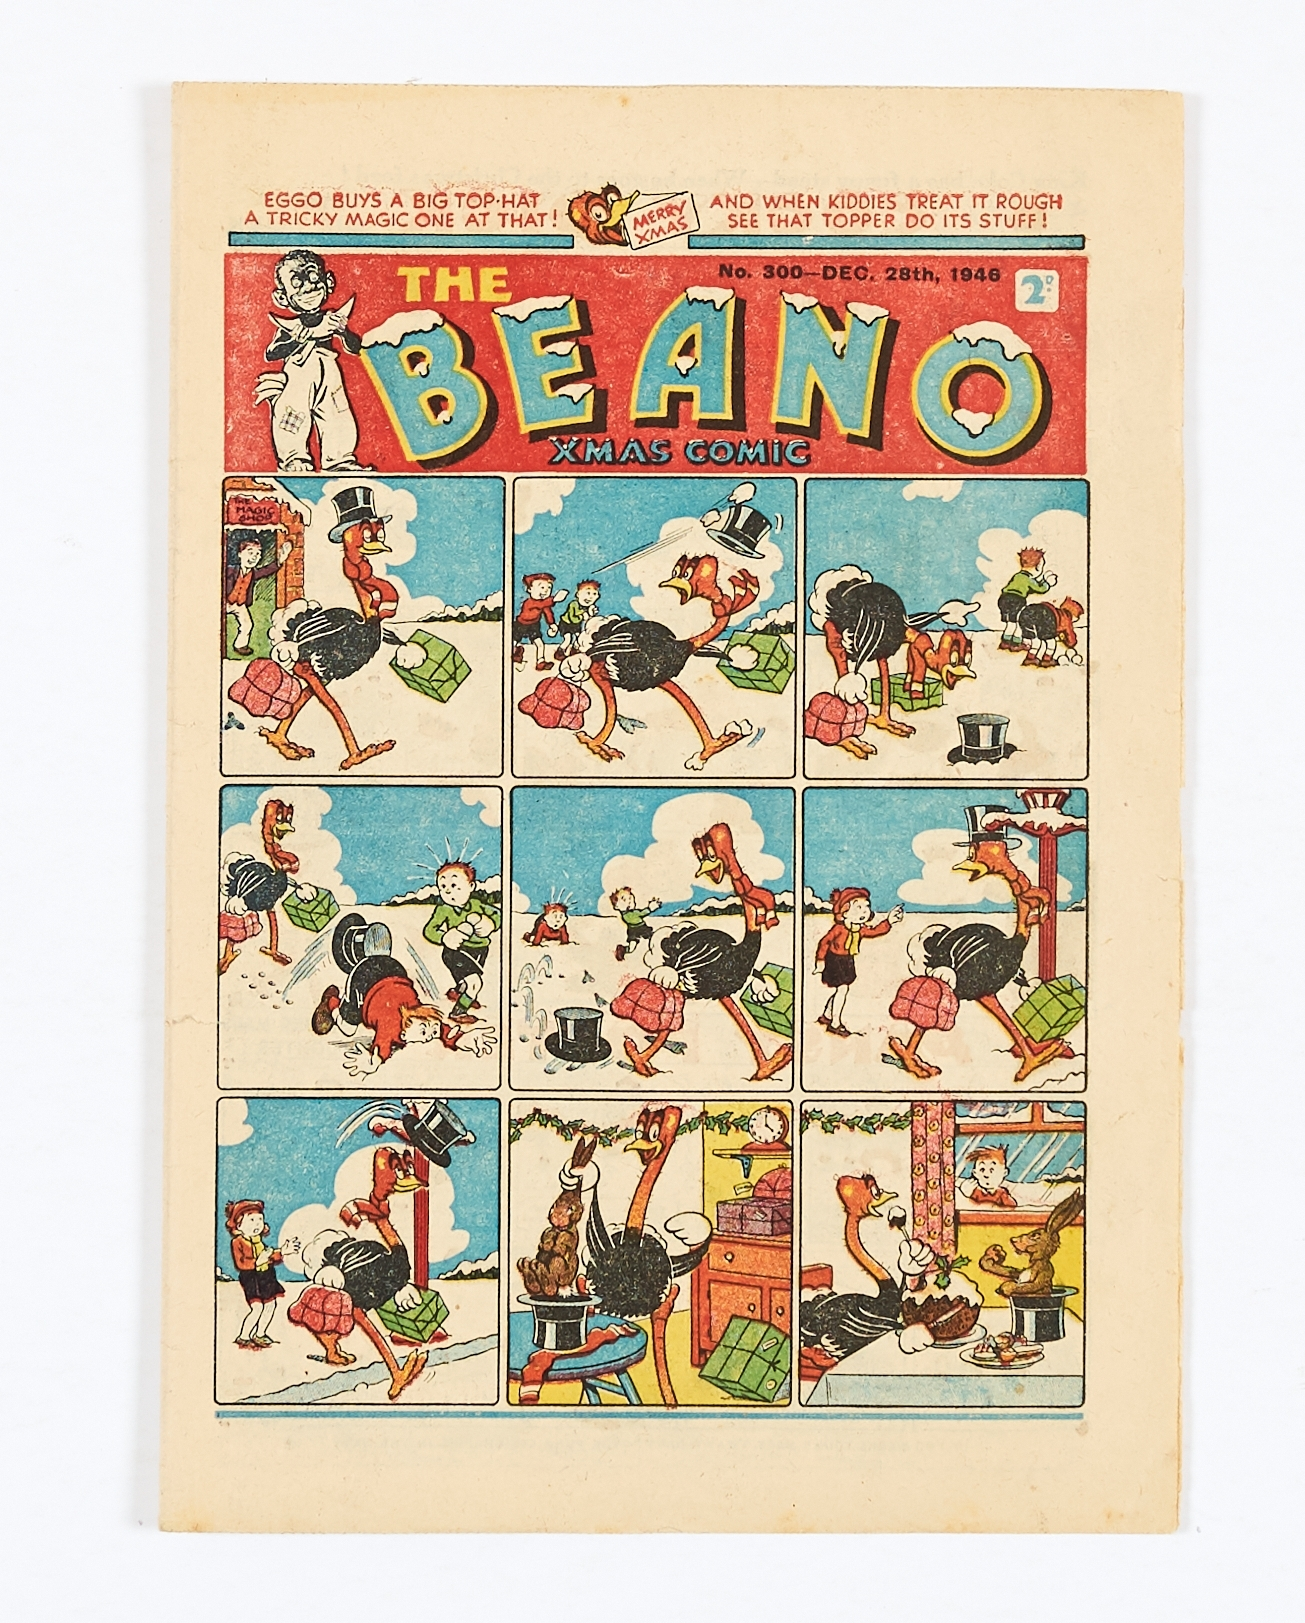 Lot 25 - Beano 300 (1946) Xmas Comic. Shipwrecked Circus double page story by Dudley Watkins. Half inch spine